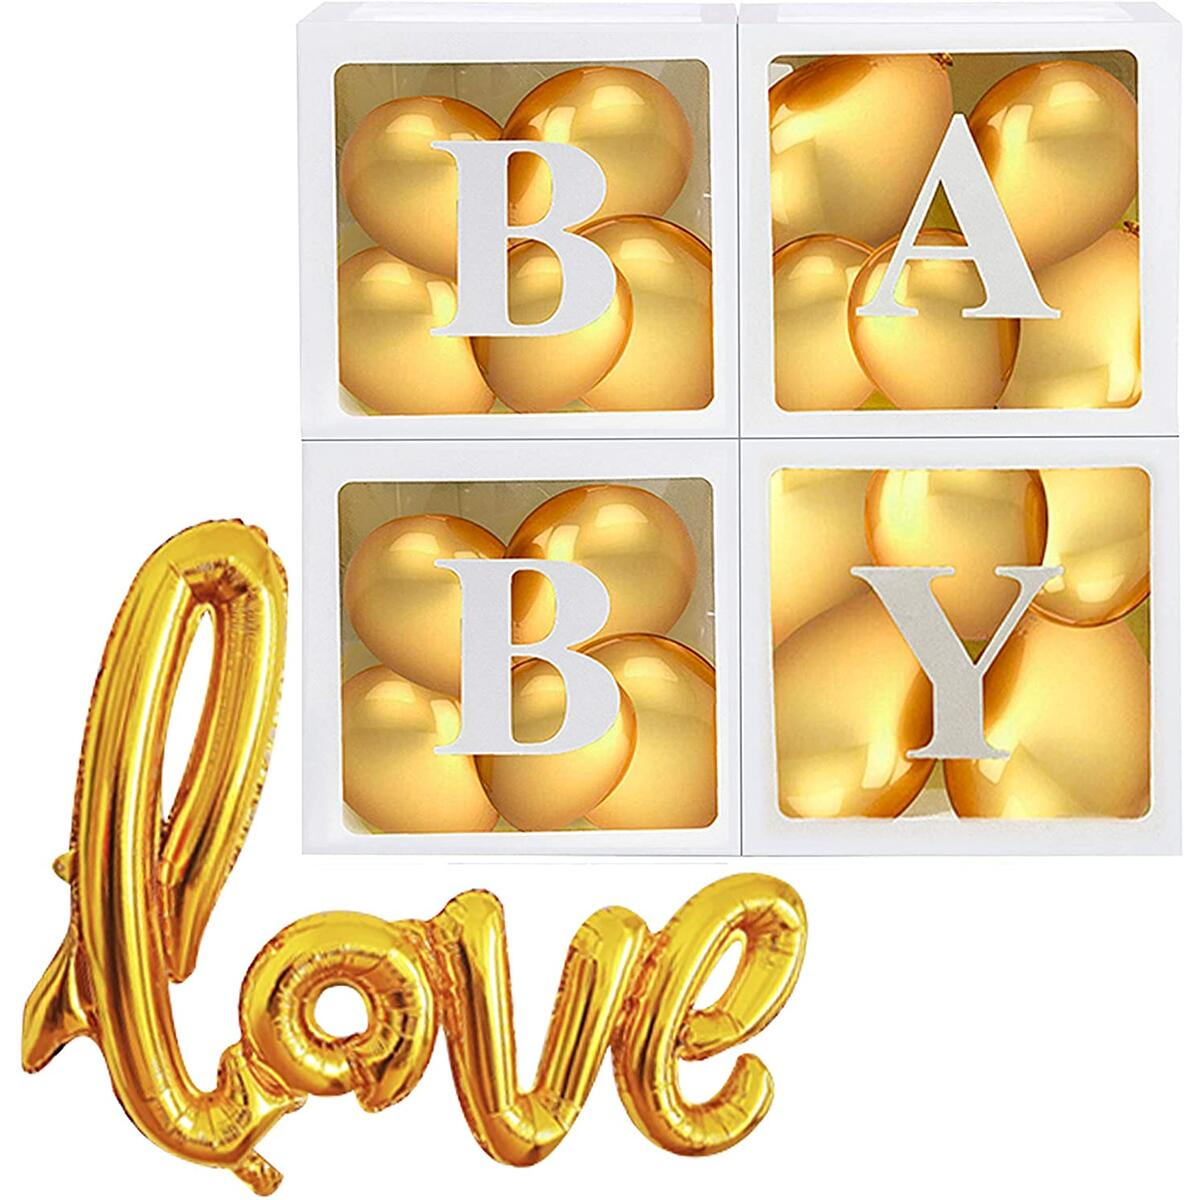 37 Pcs Gender Neutral Baby Shower Decorations Kit, Clear Baby Boxes with Letters for Baby Shower, Gender Reveal Décor, Gender Reveal Boxes for Balloons, Gold Baby Shower Party Supplies